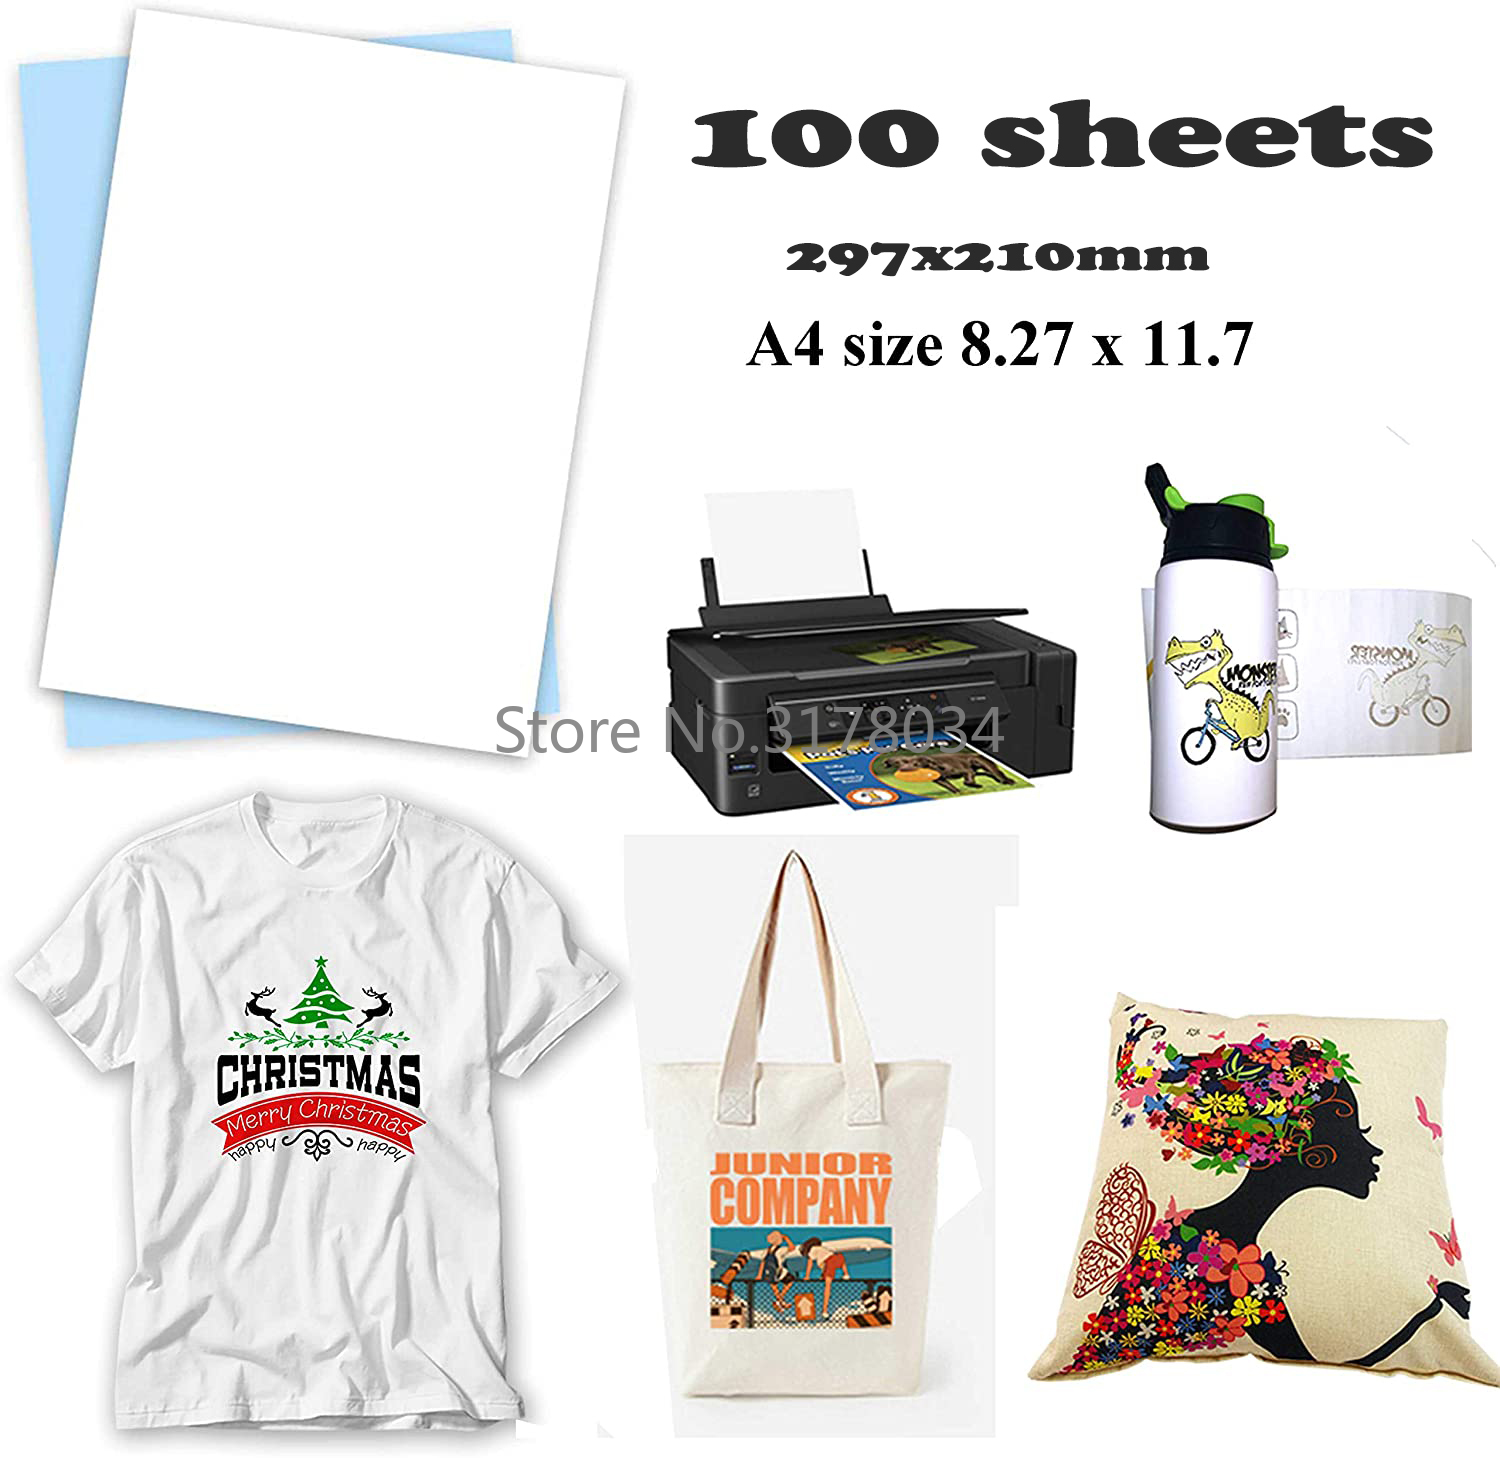 100Sheets A4 Sublimation Paper Heat Transfer Paper For EPSON HP CANON Inkjet Printer In Light Color Shirts Hat Cap Mug Cup